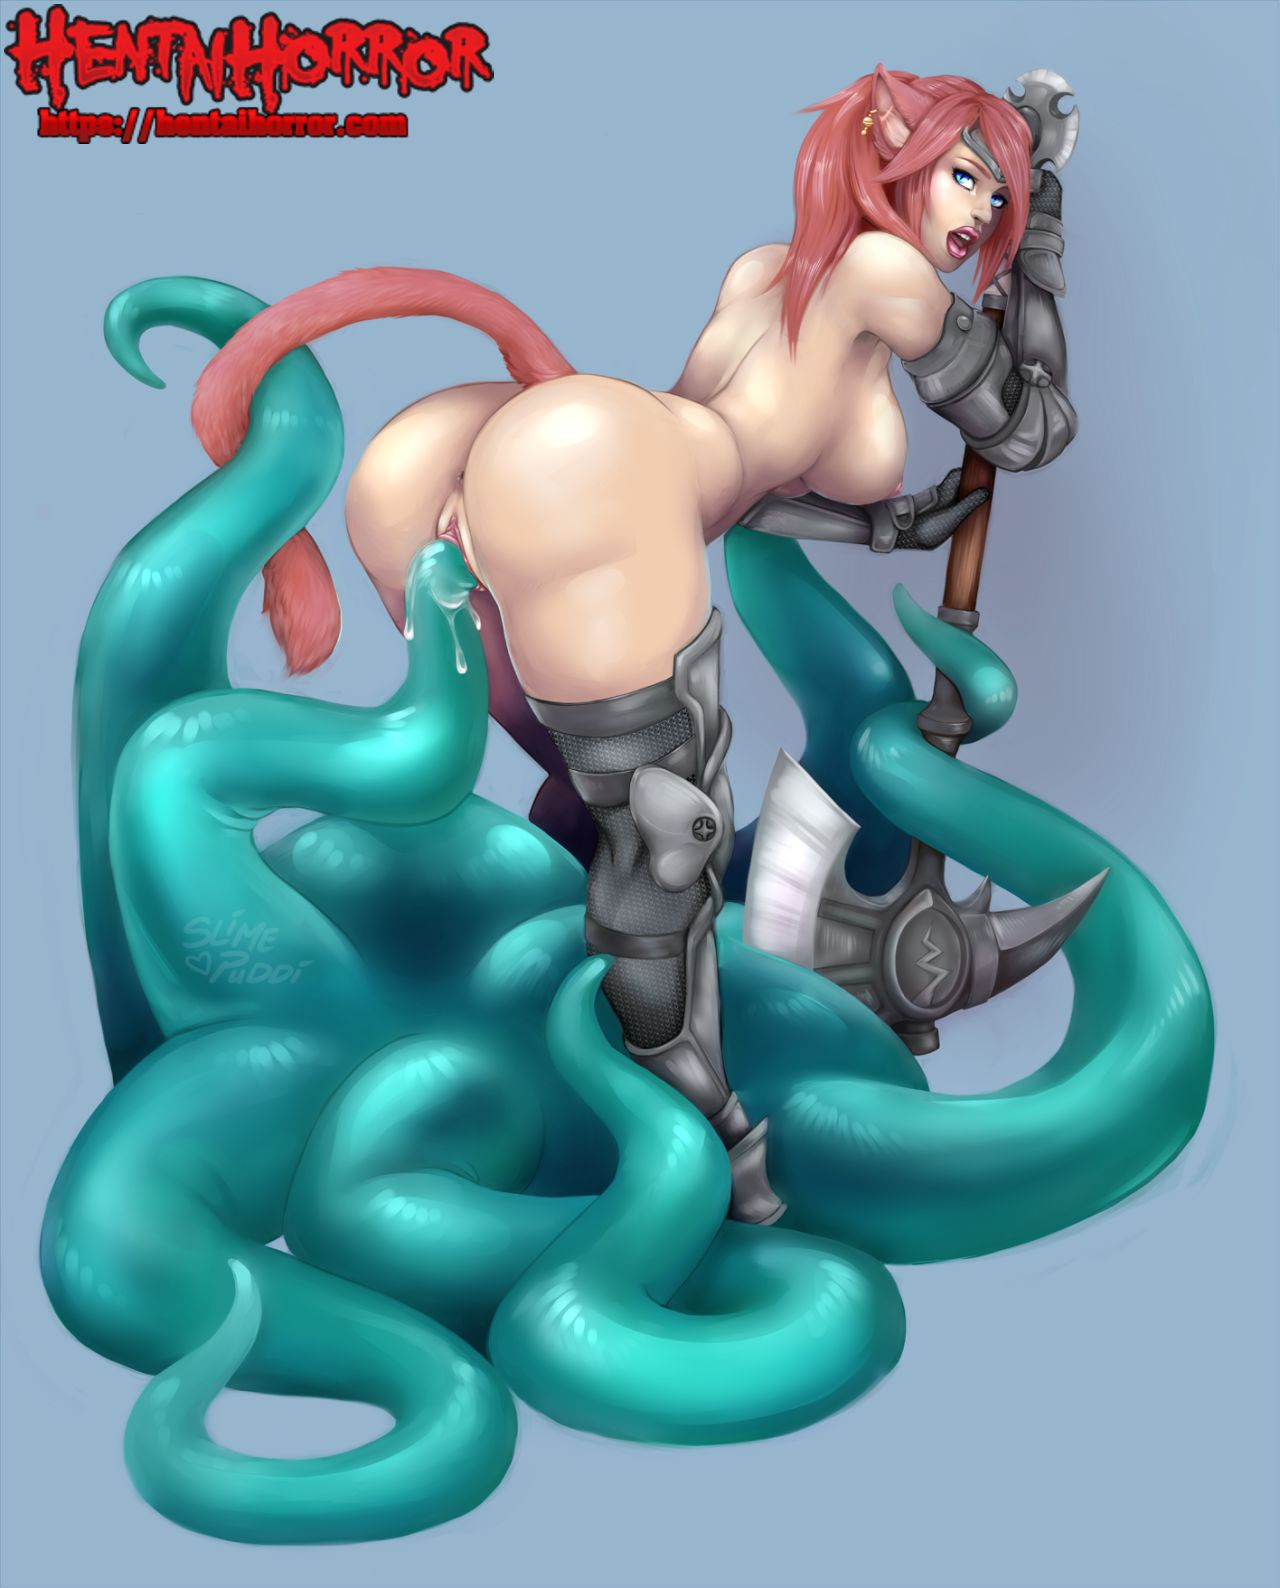 monster tentacle rape hentai oppai